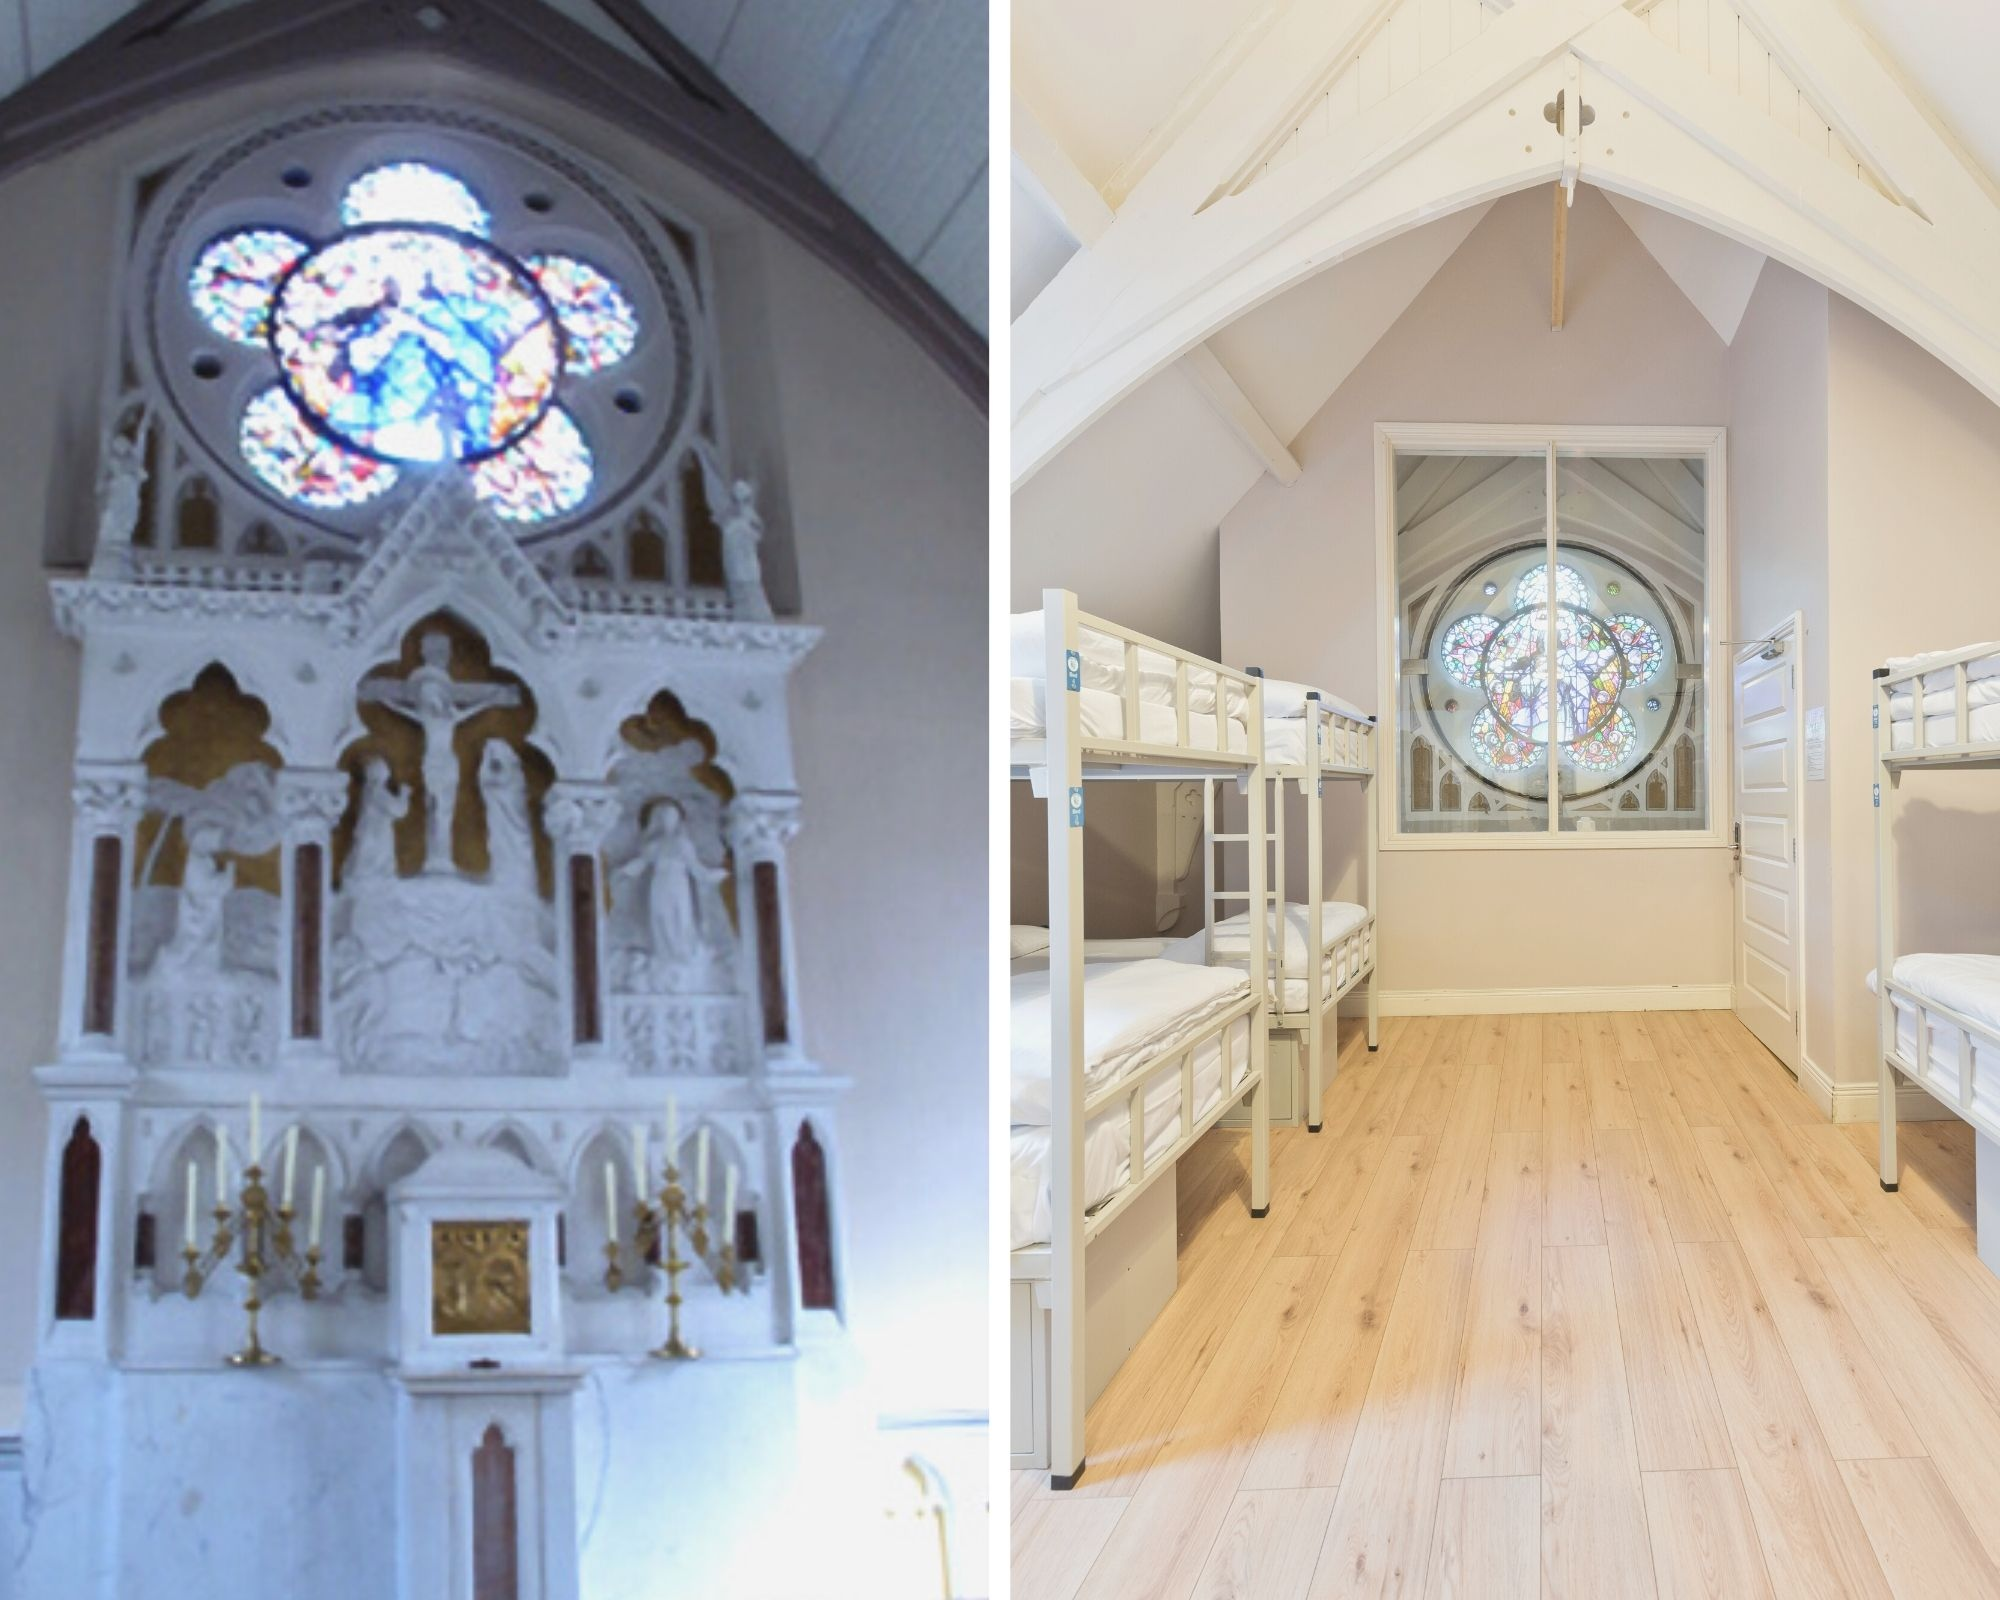 Two pictures comparing the original and renovated Chapel structure